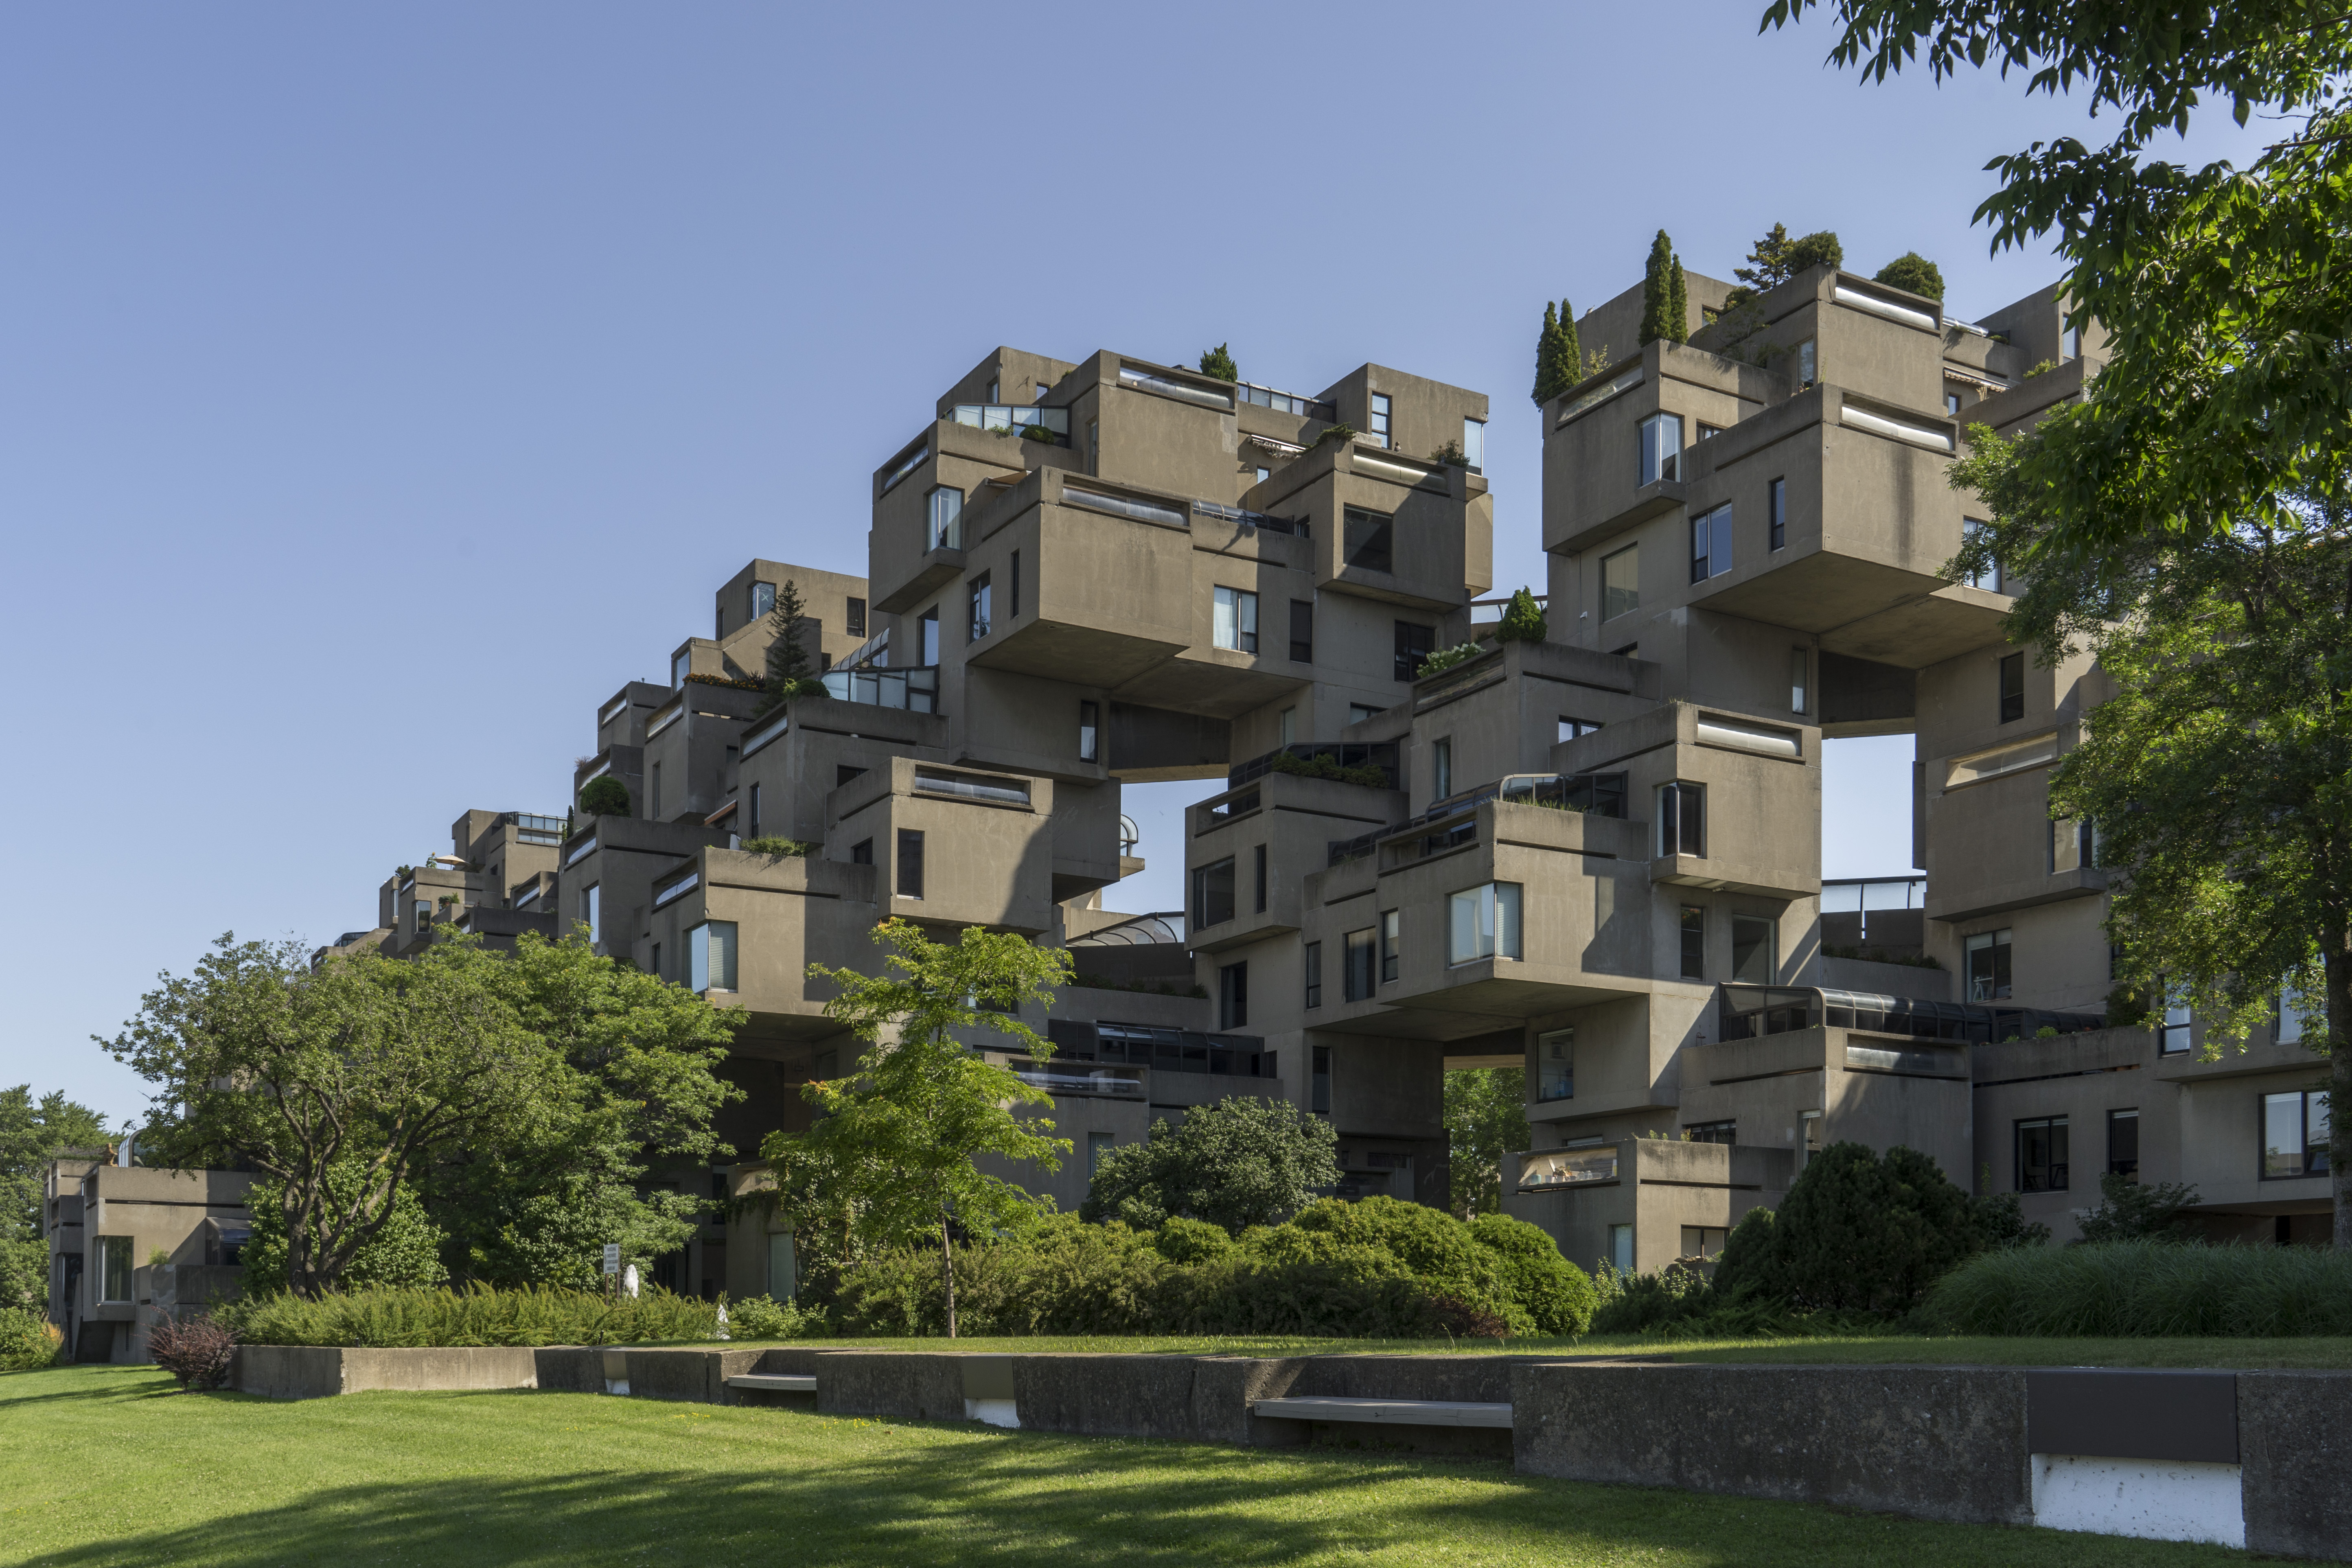 File habitat 67 southwest wikimedia commons for Construction habitat